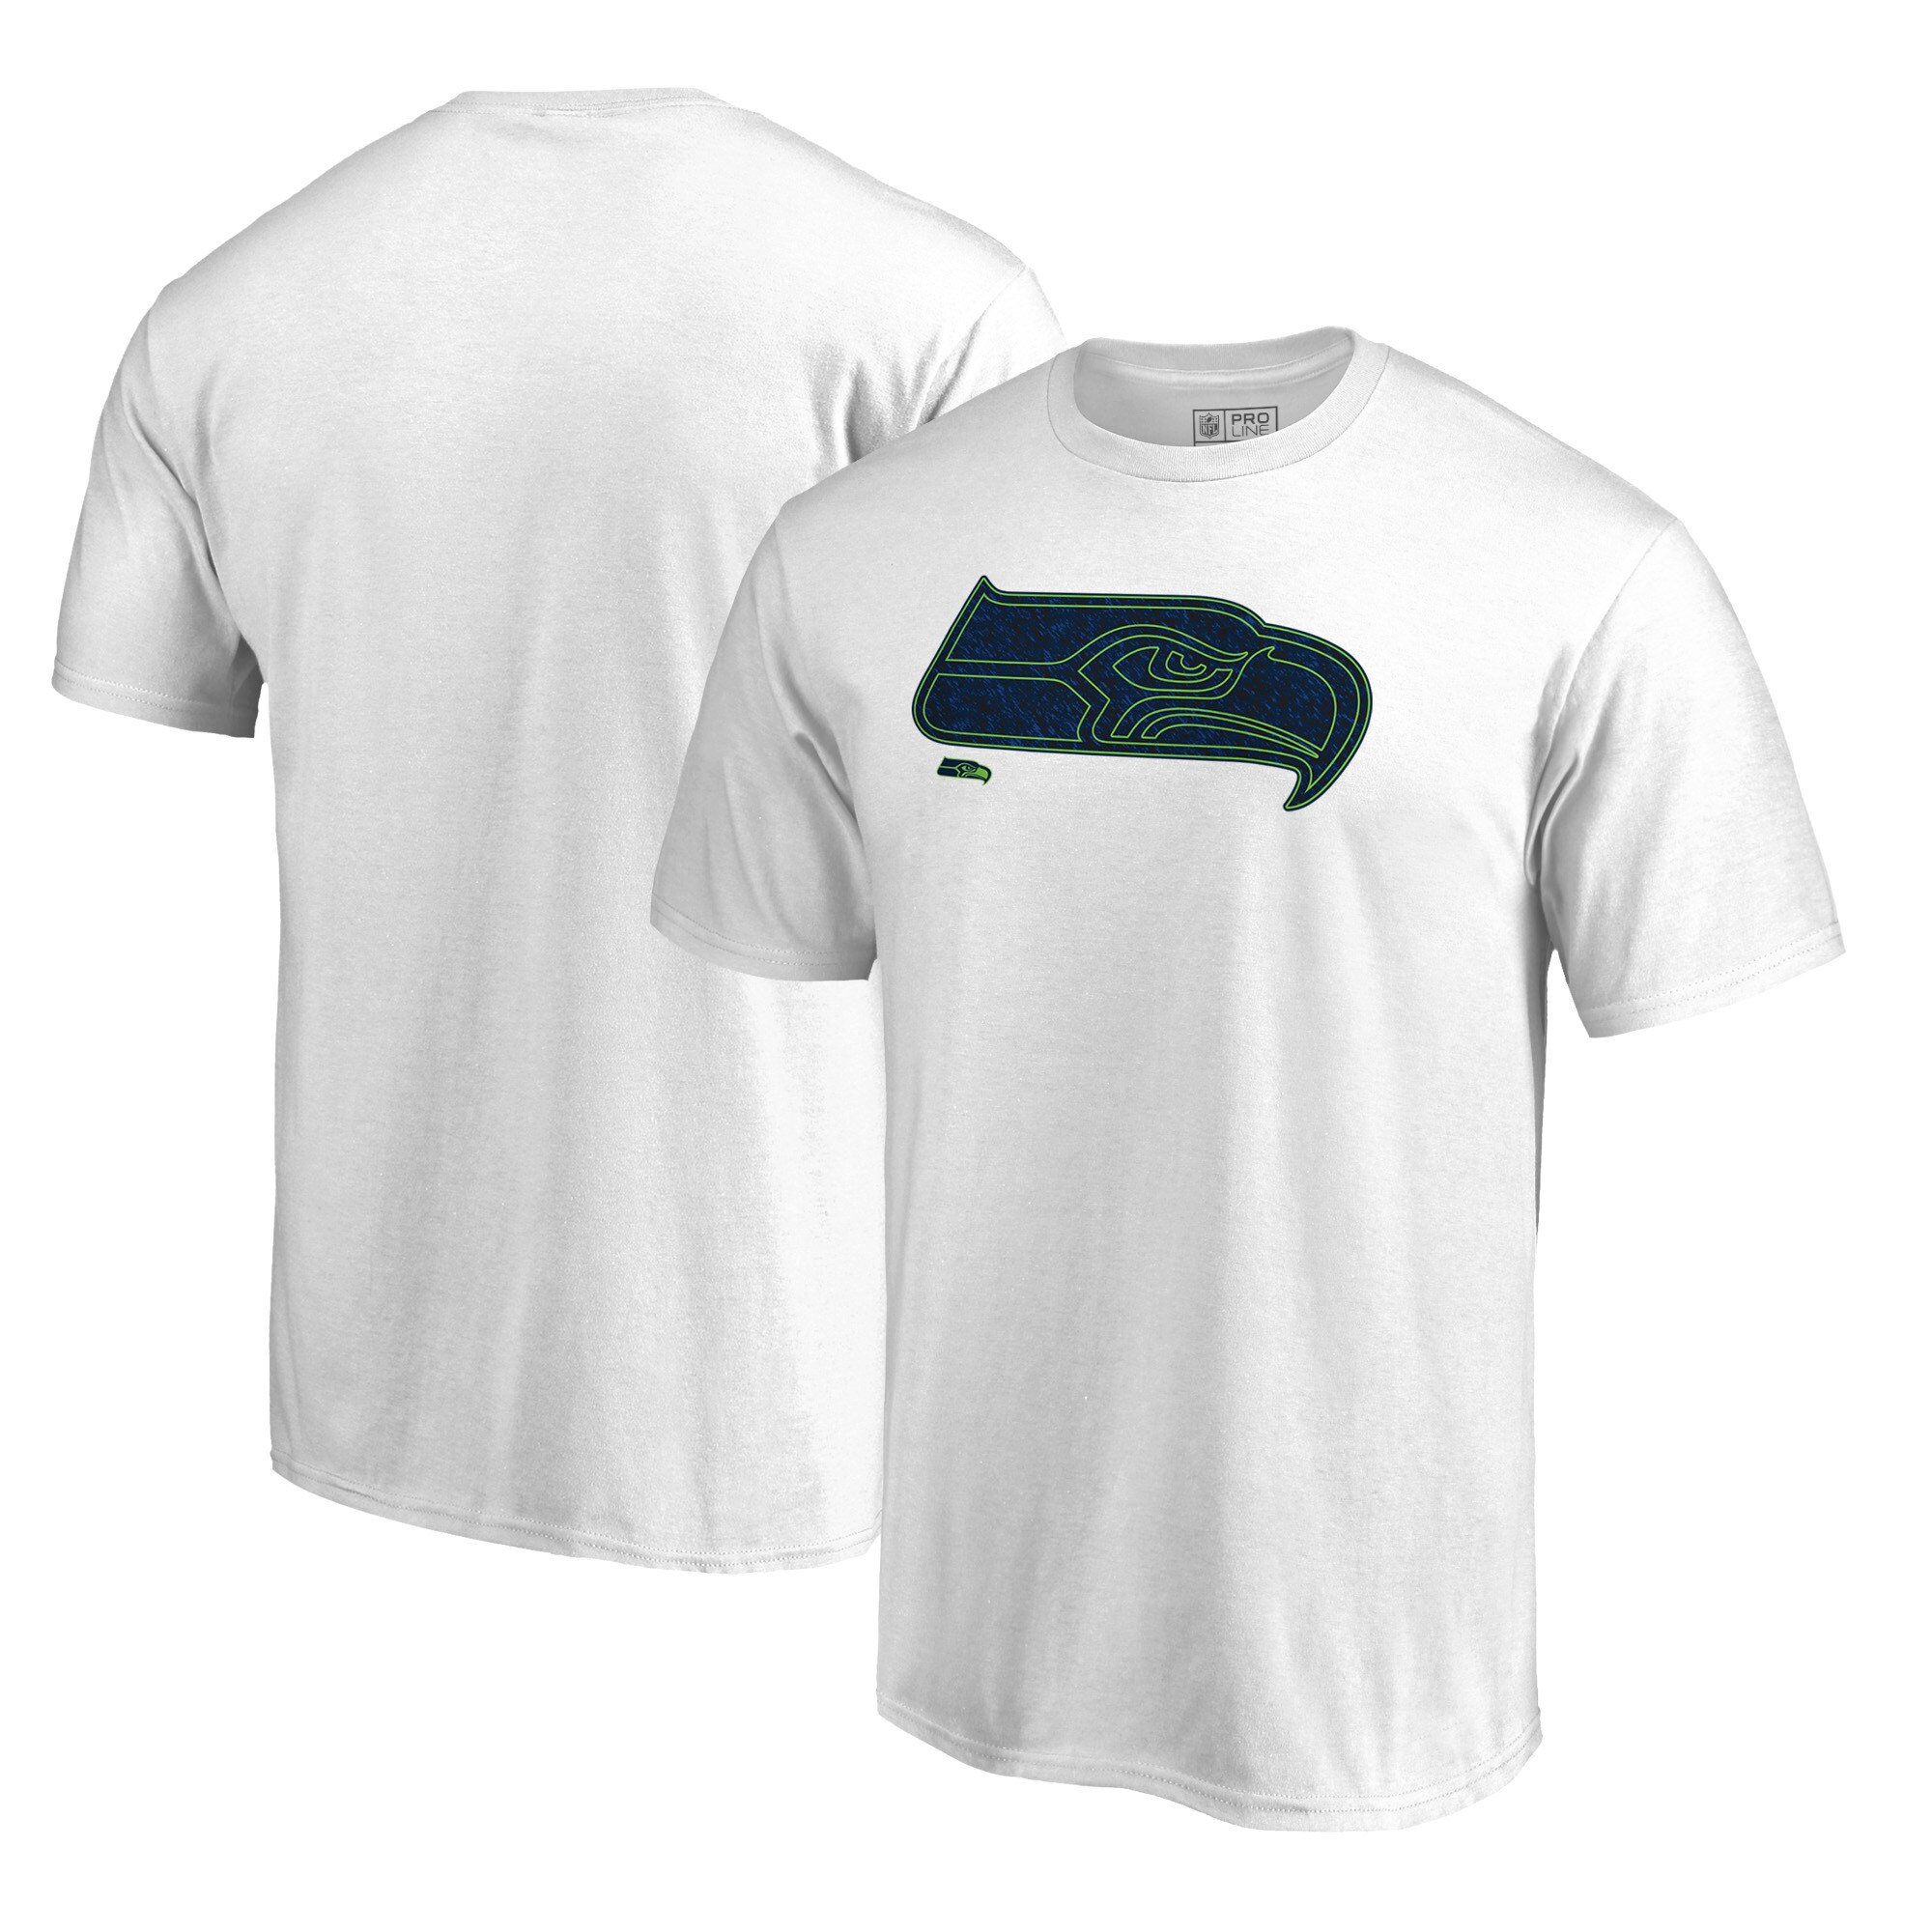 Seattle Seahawks NFL Pro Line by Fanatics Branded Training Camp Hookup T-Shirt - White